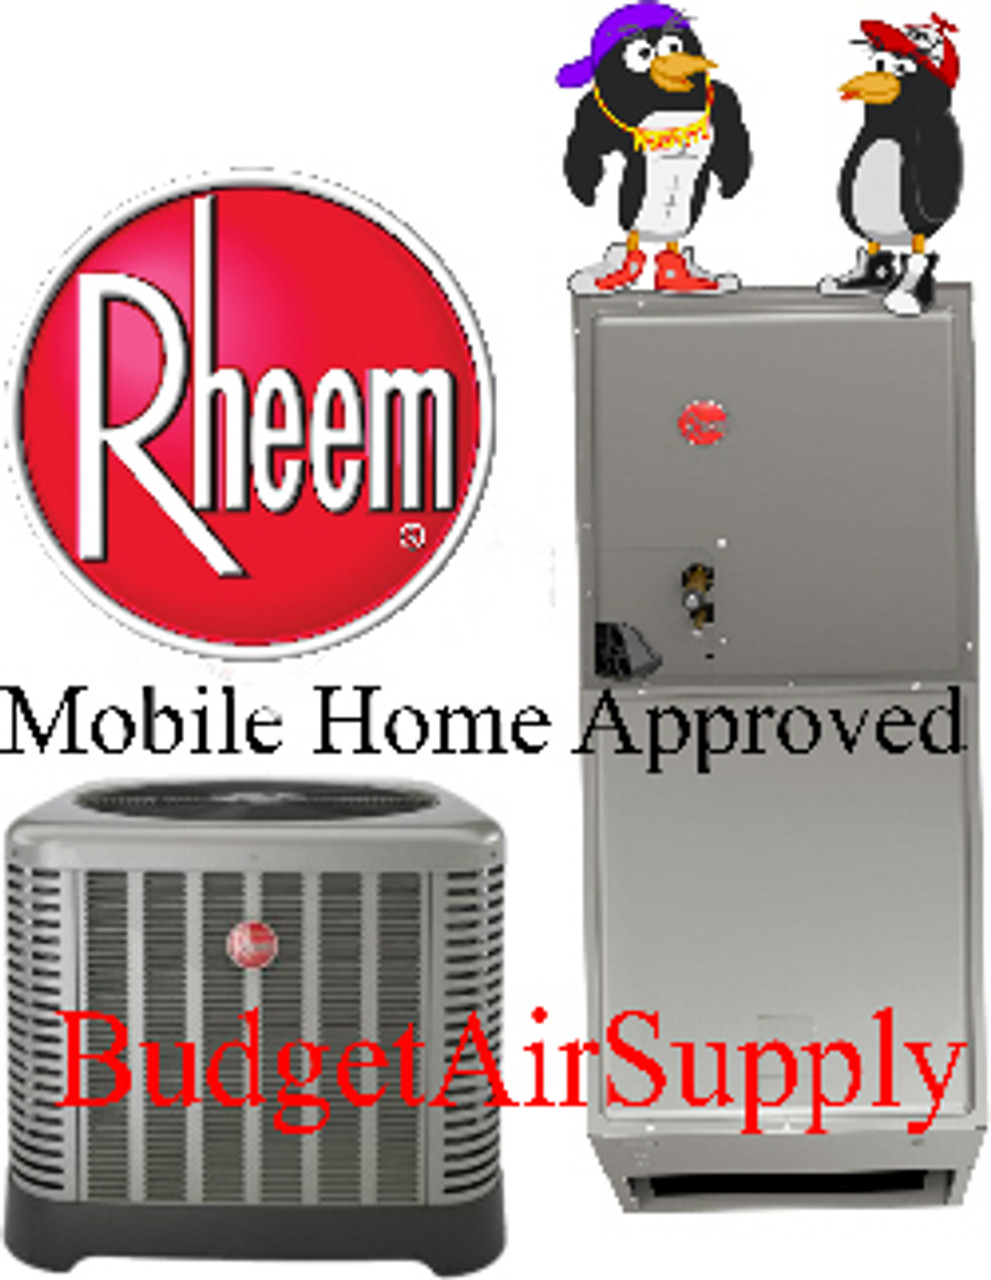 Rheem Mobile Home Approved 2.5 ton 14 Seer A/C with ... on hvac package units, ceiling mounted hvac units, horizontal hvac units, goodman hvac units,